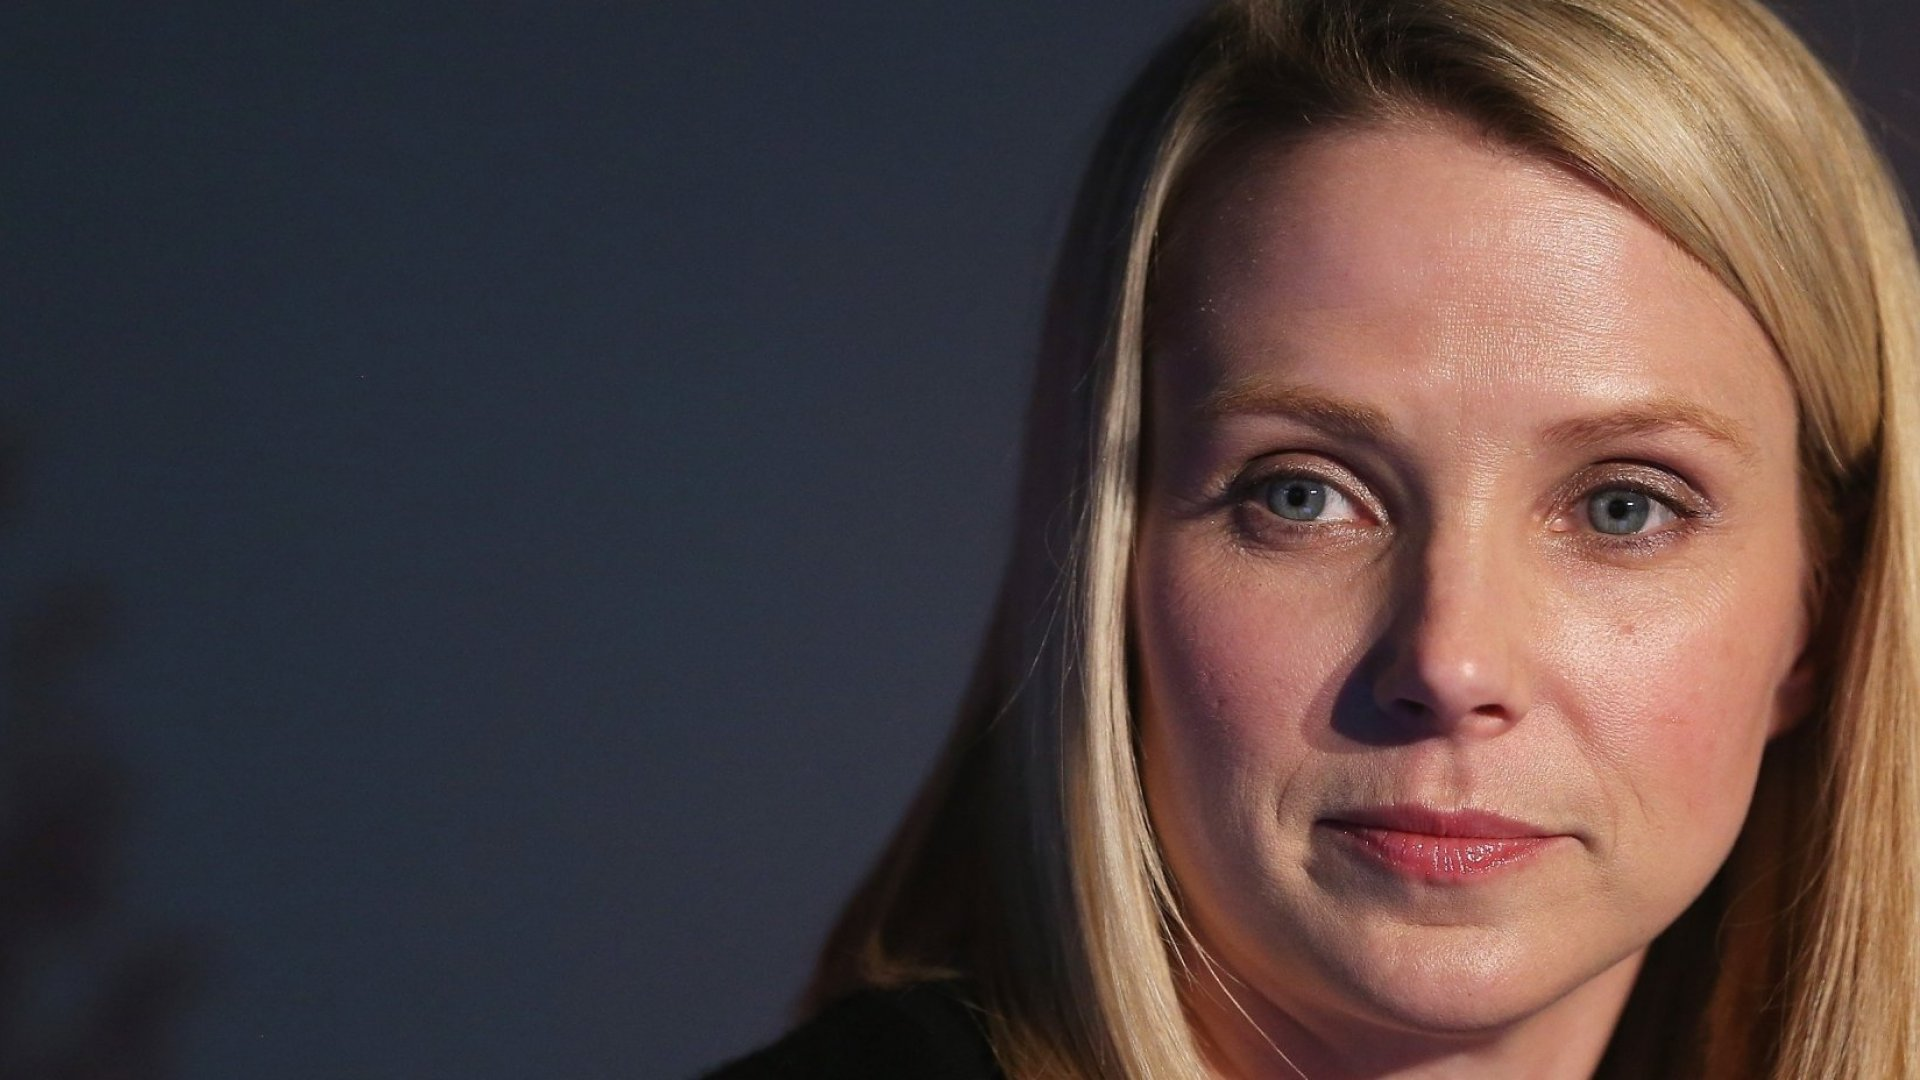 Marissa Mayer to Step Down as Yahoo's CEO Once Verizon Deal Closes